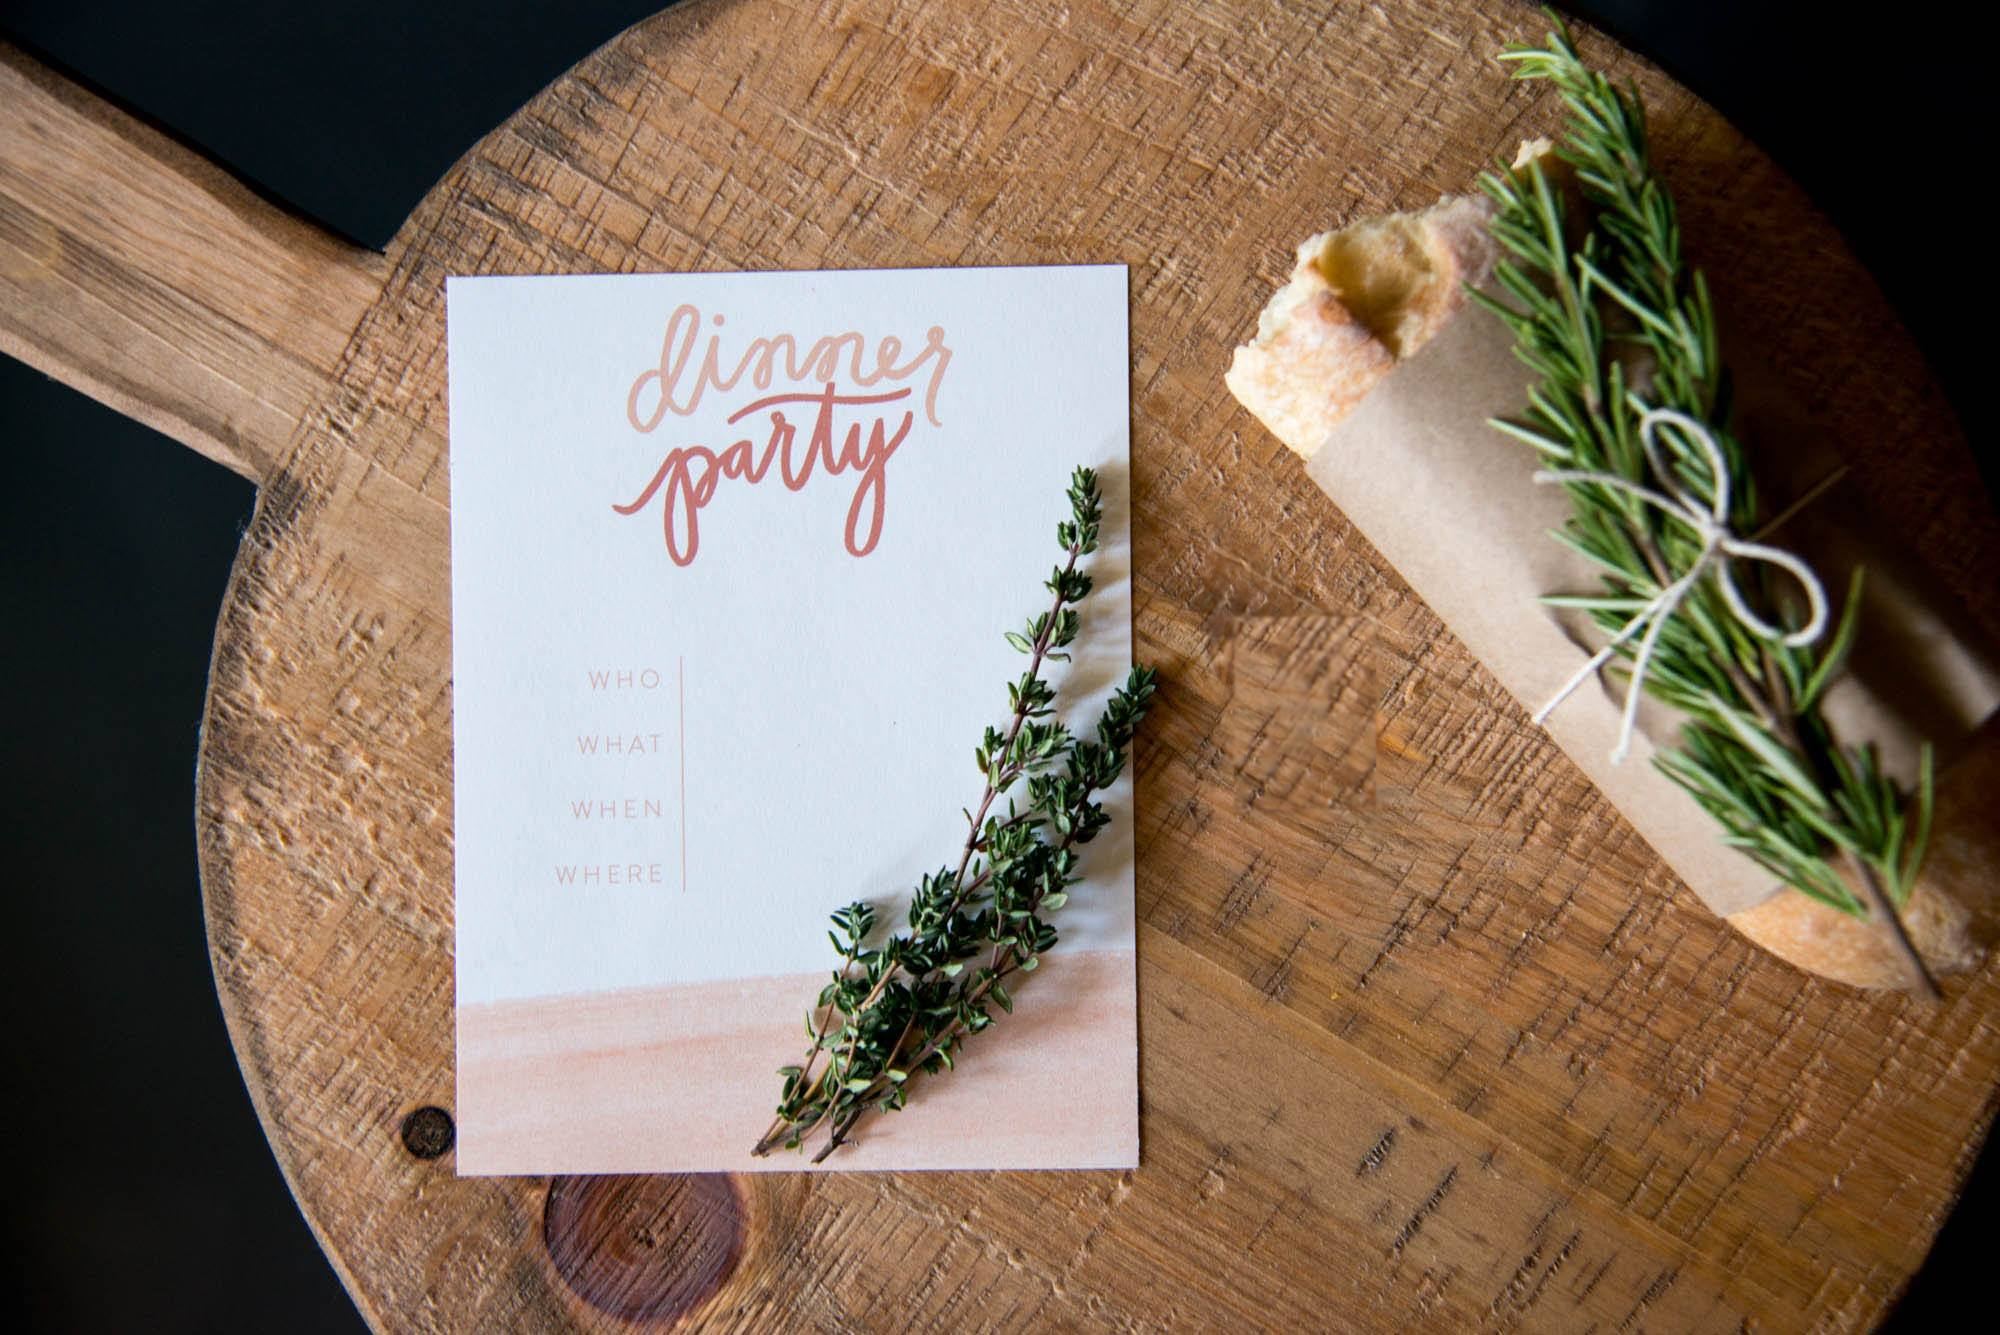 Joanna Gaines Dinner party invitation